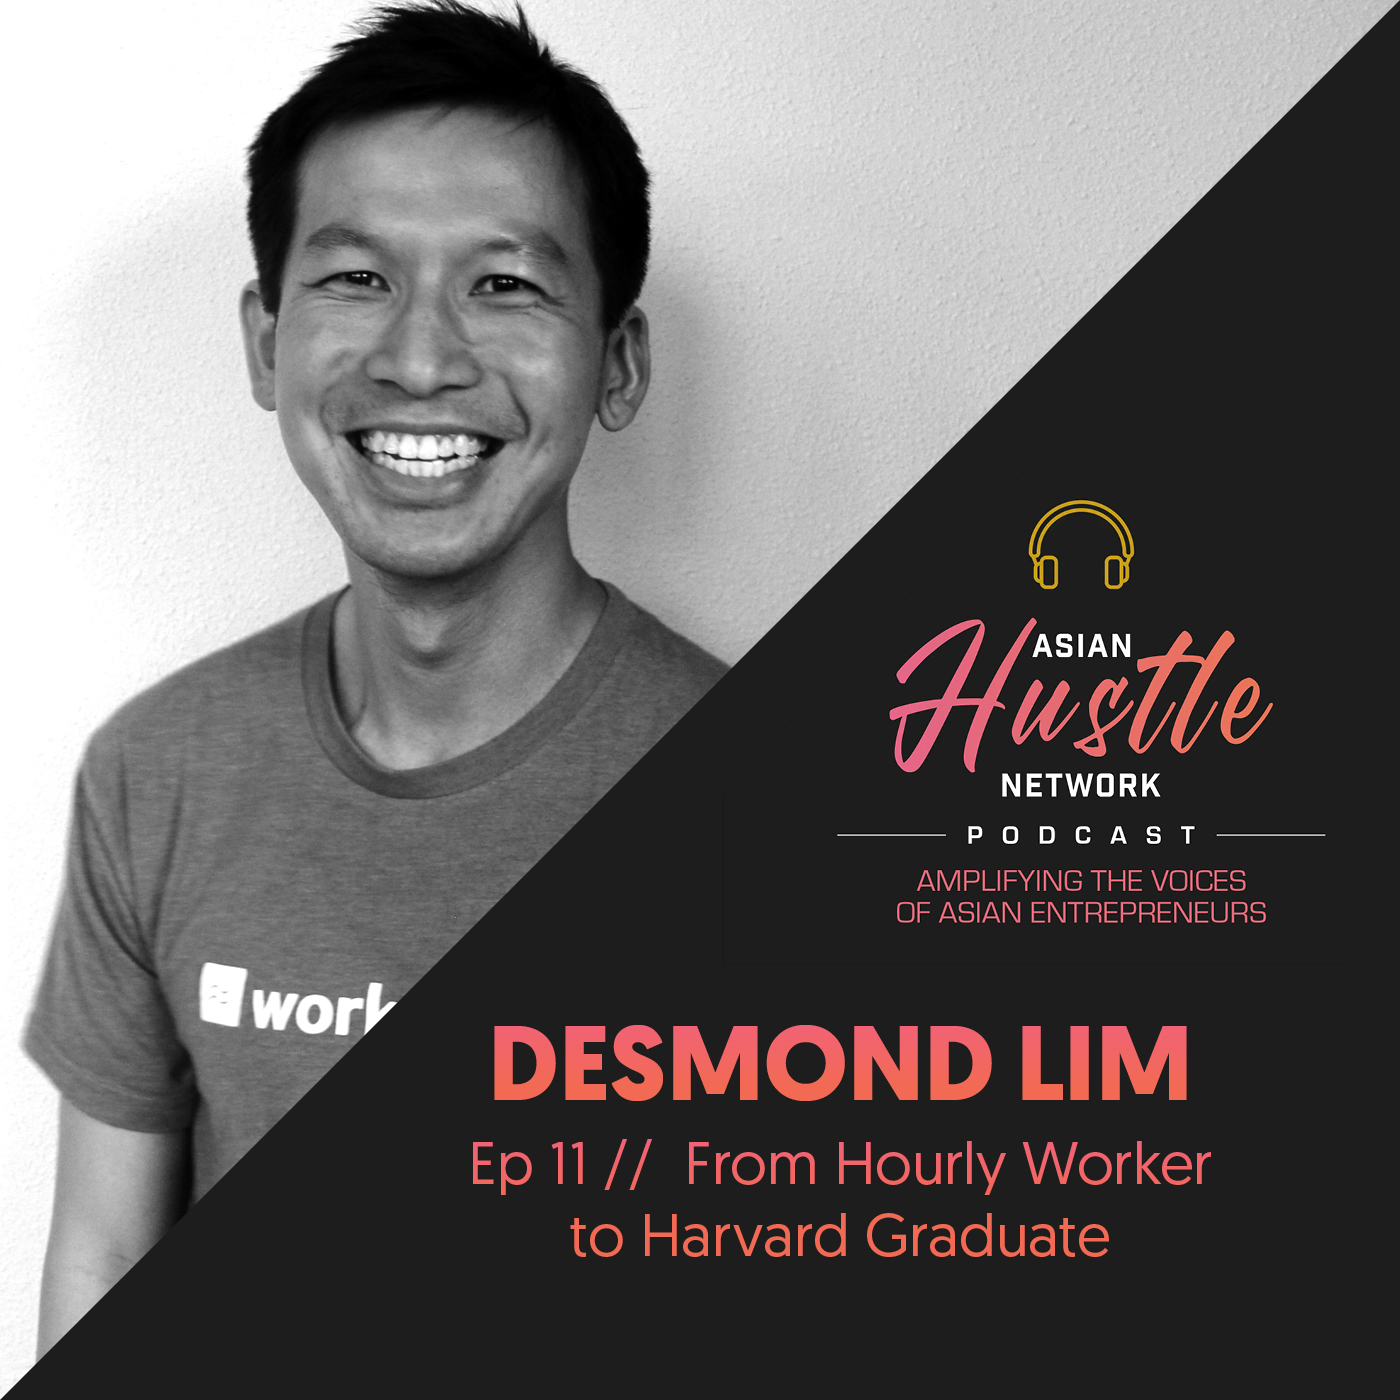 www.asianhustlenetwork.com: Desmond Lim // Ep 11 // From Hourly Worker to Harvard Graduate